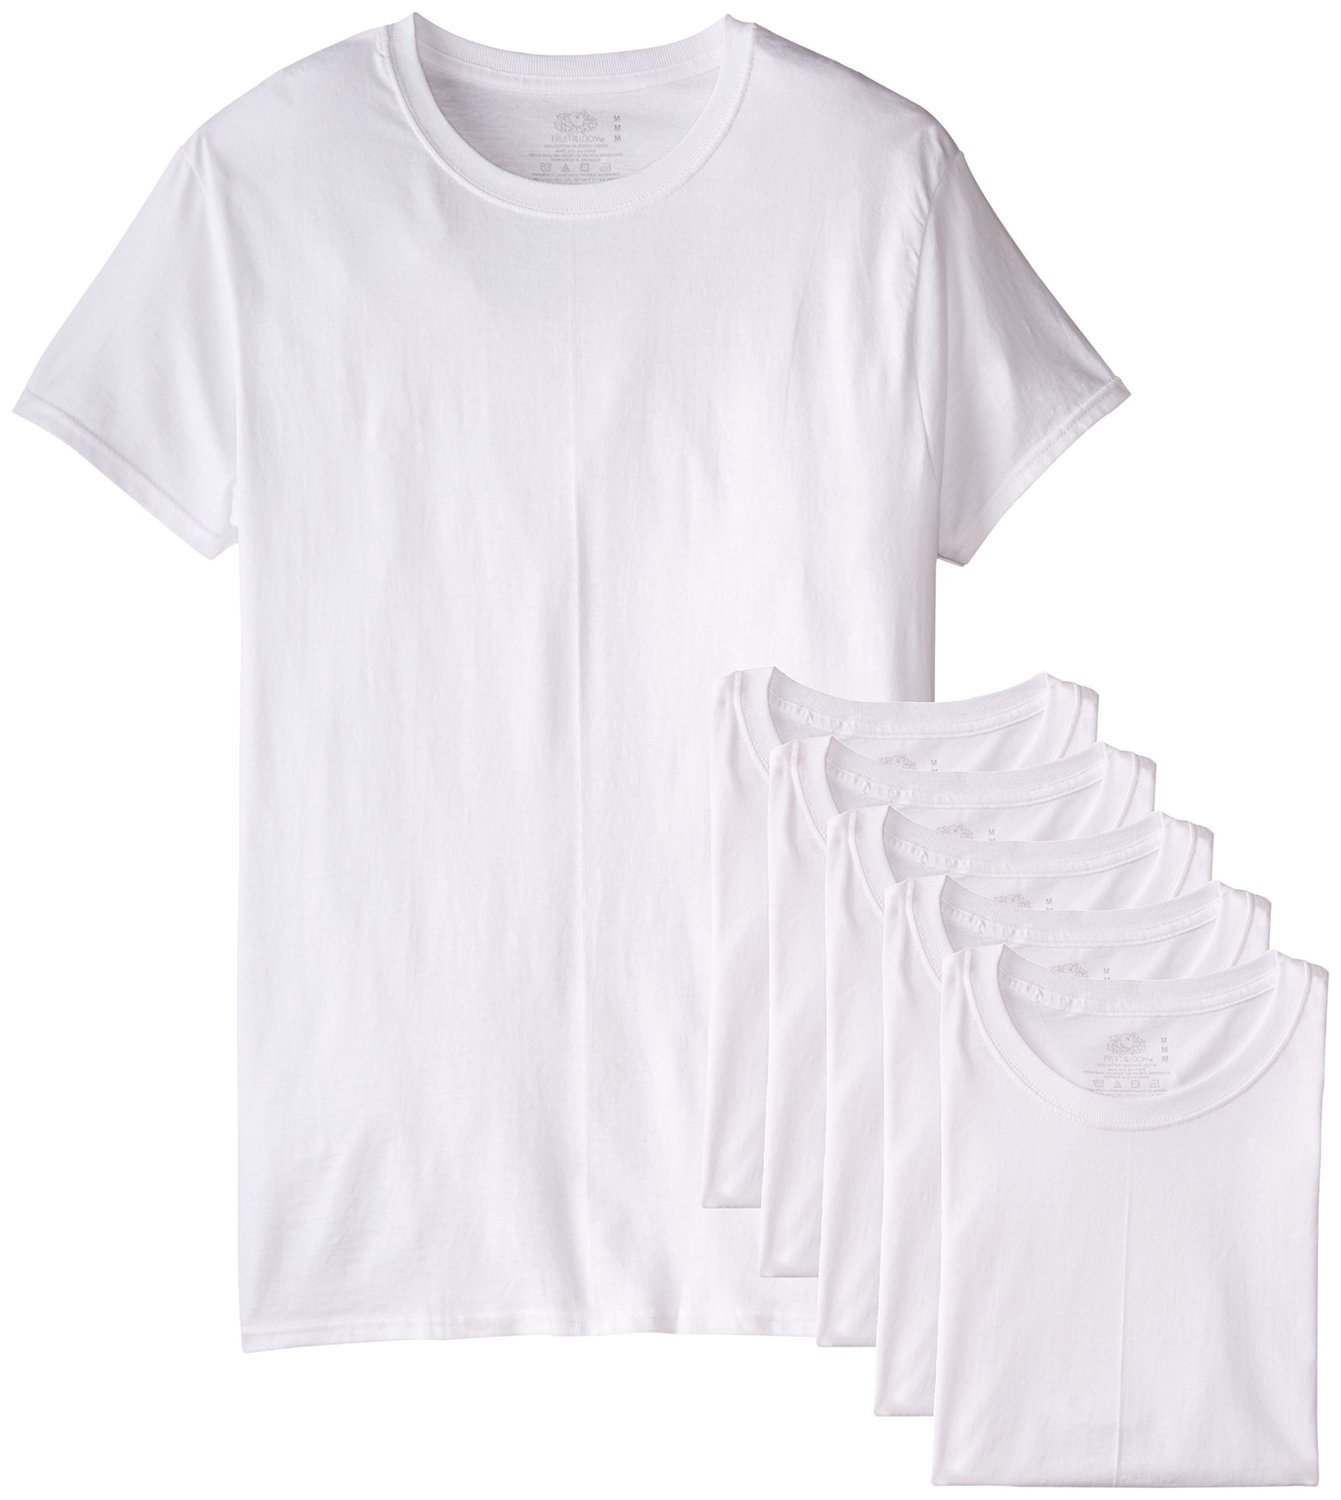 Fruit of the Loom Men's Stay Tucked Crew T-Shirt (White, XX-Large Tall)